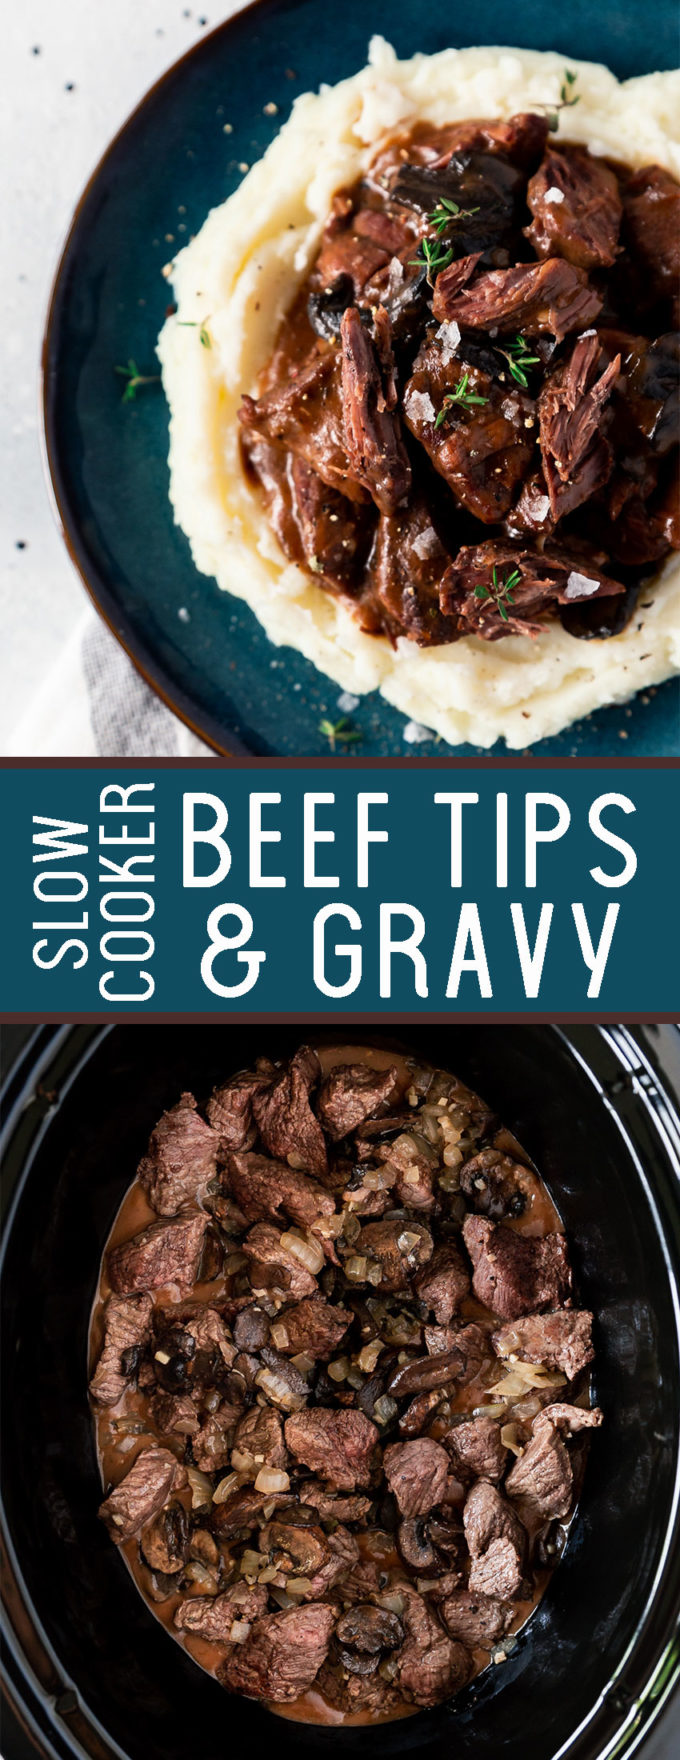 A delicious slow cooker beef tips and gravy. A tasty onion gravy that is absolutely delicious.